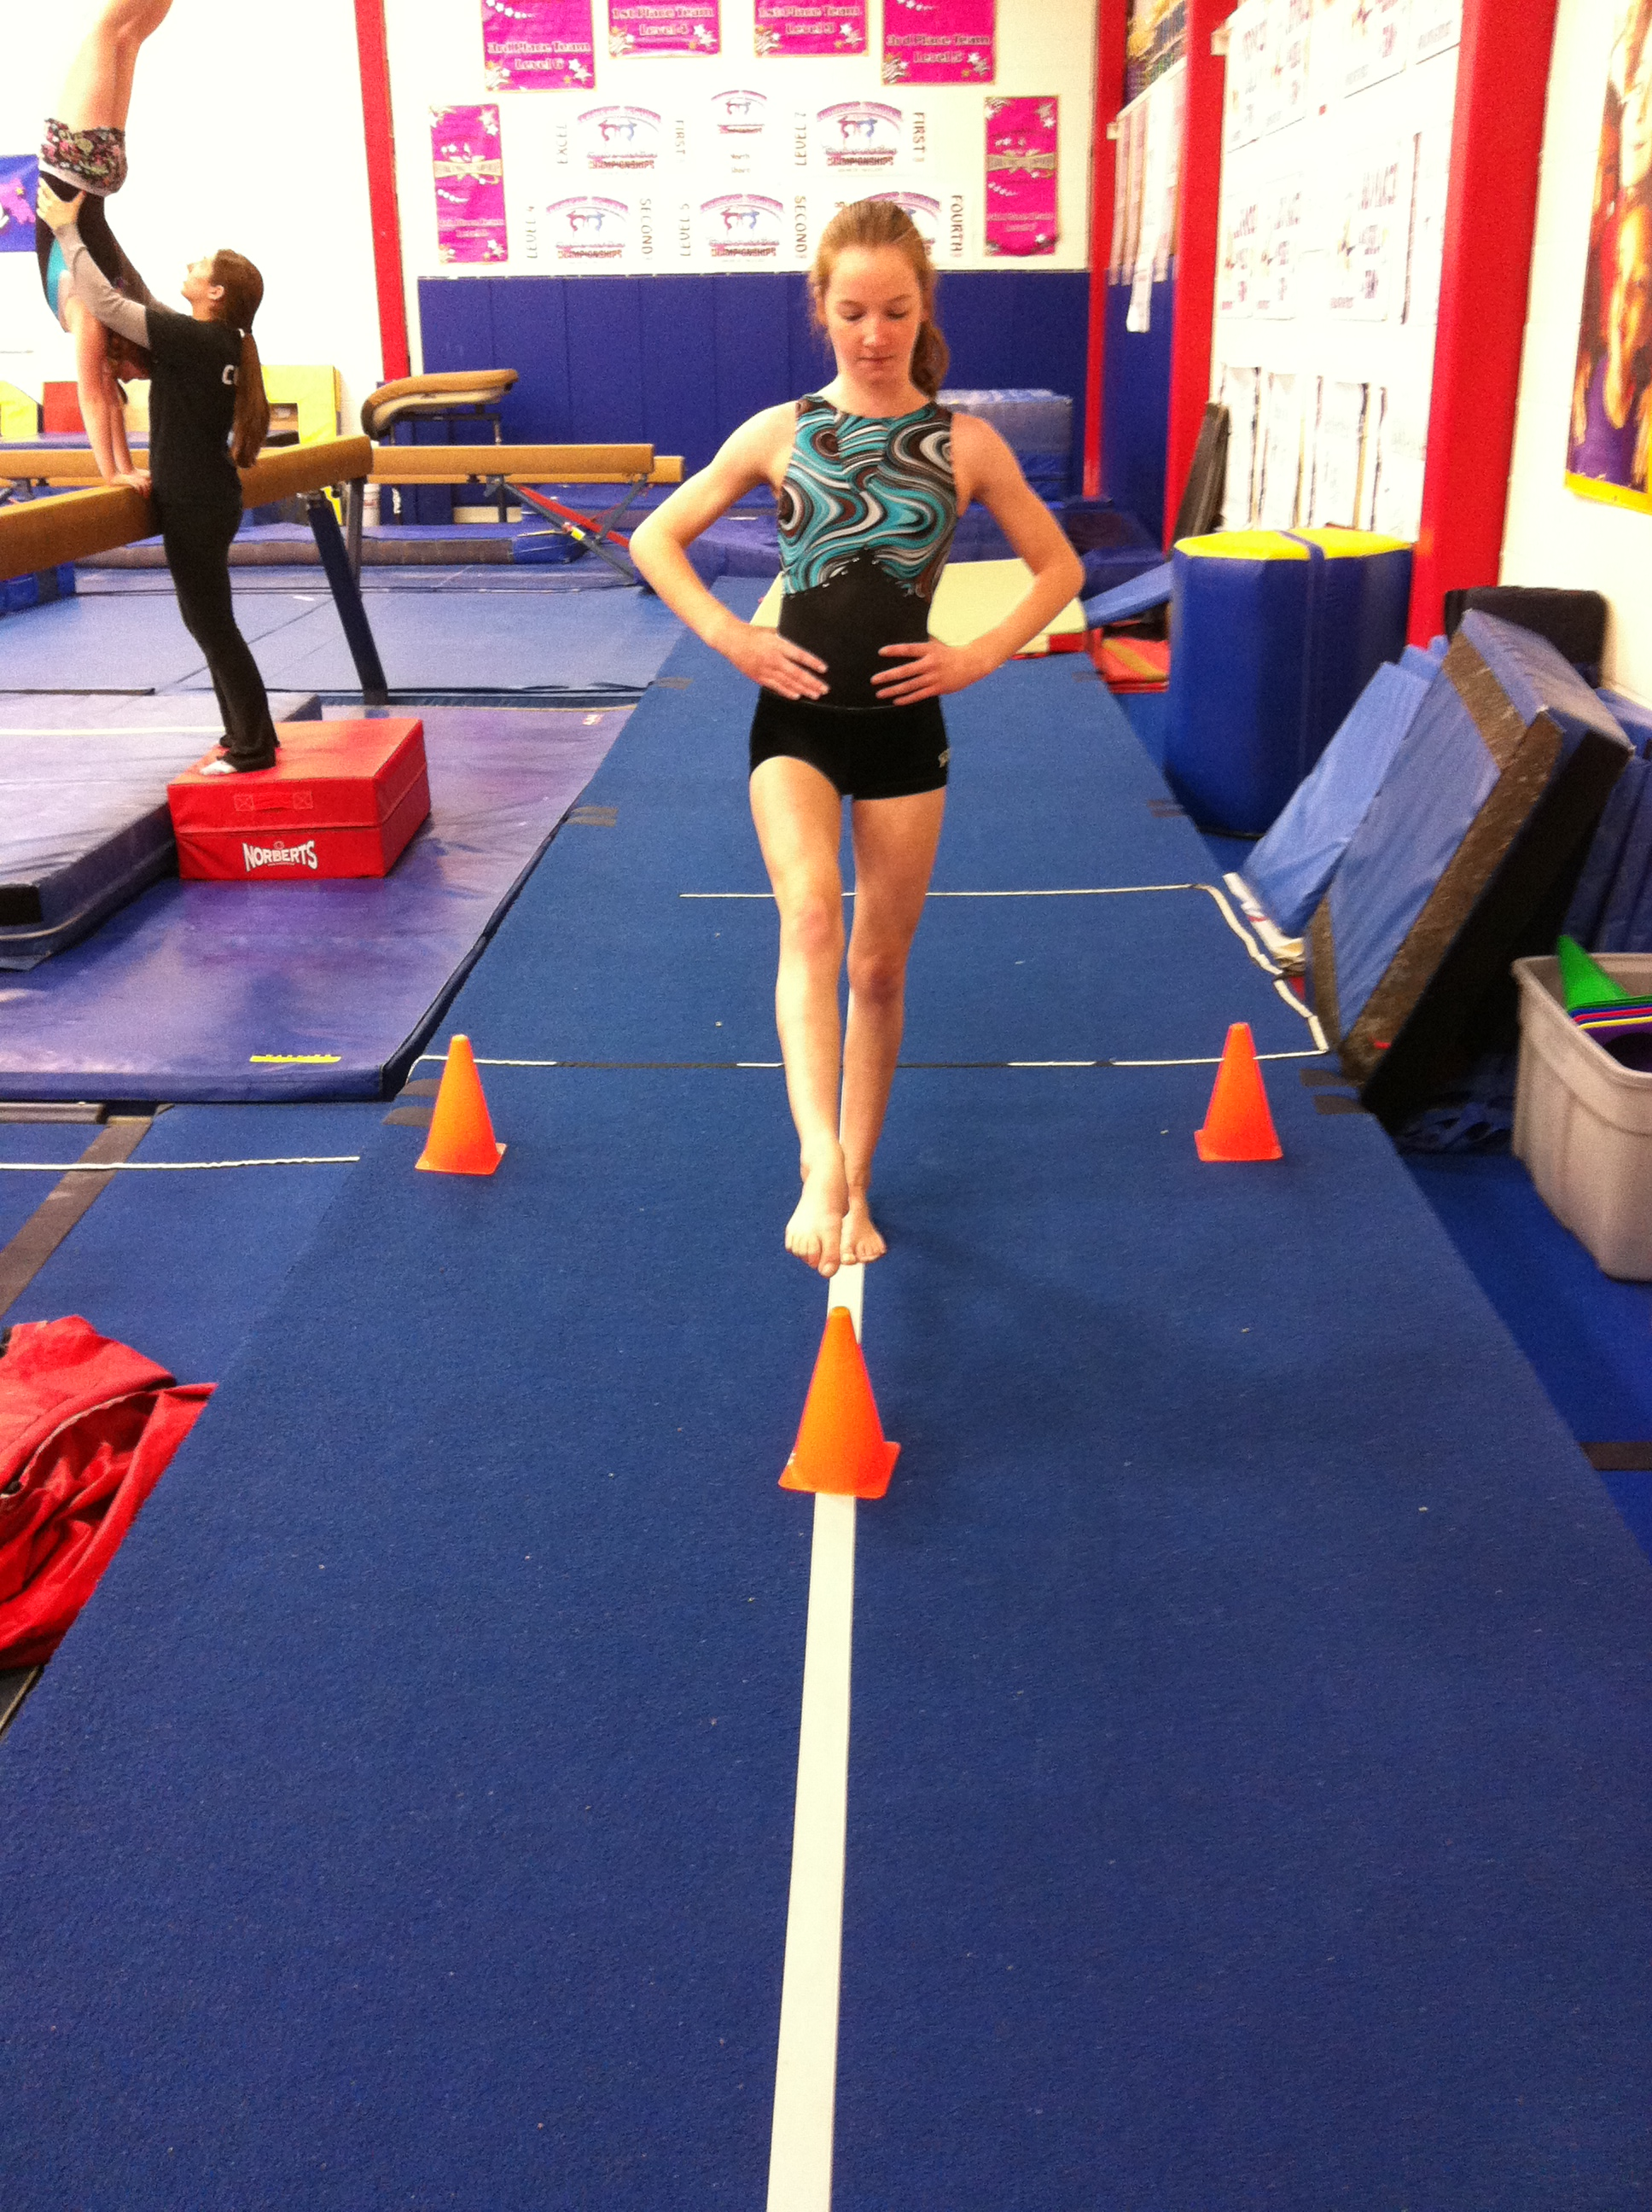 physics of gymnastics By: haylee thomas the physics of gymnastics uneven bars vault sources newton's 1st law beam newton's 2nd law this is an apparatus that has two bars (set at different heights) that a gymnast does flips , spins and release moves off of moving bar to bar.